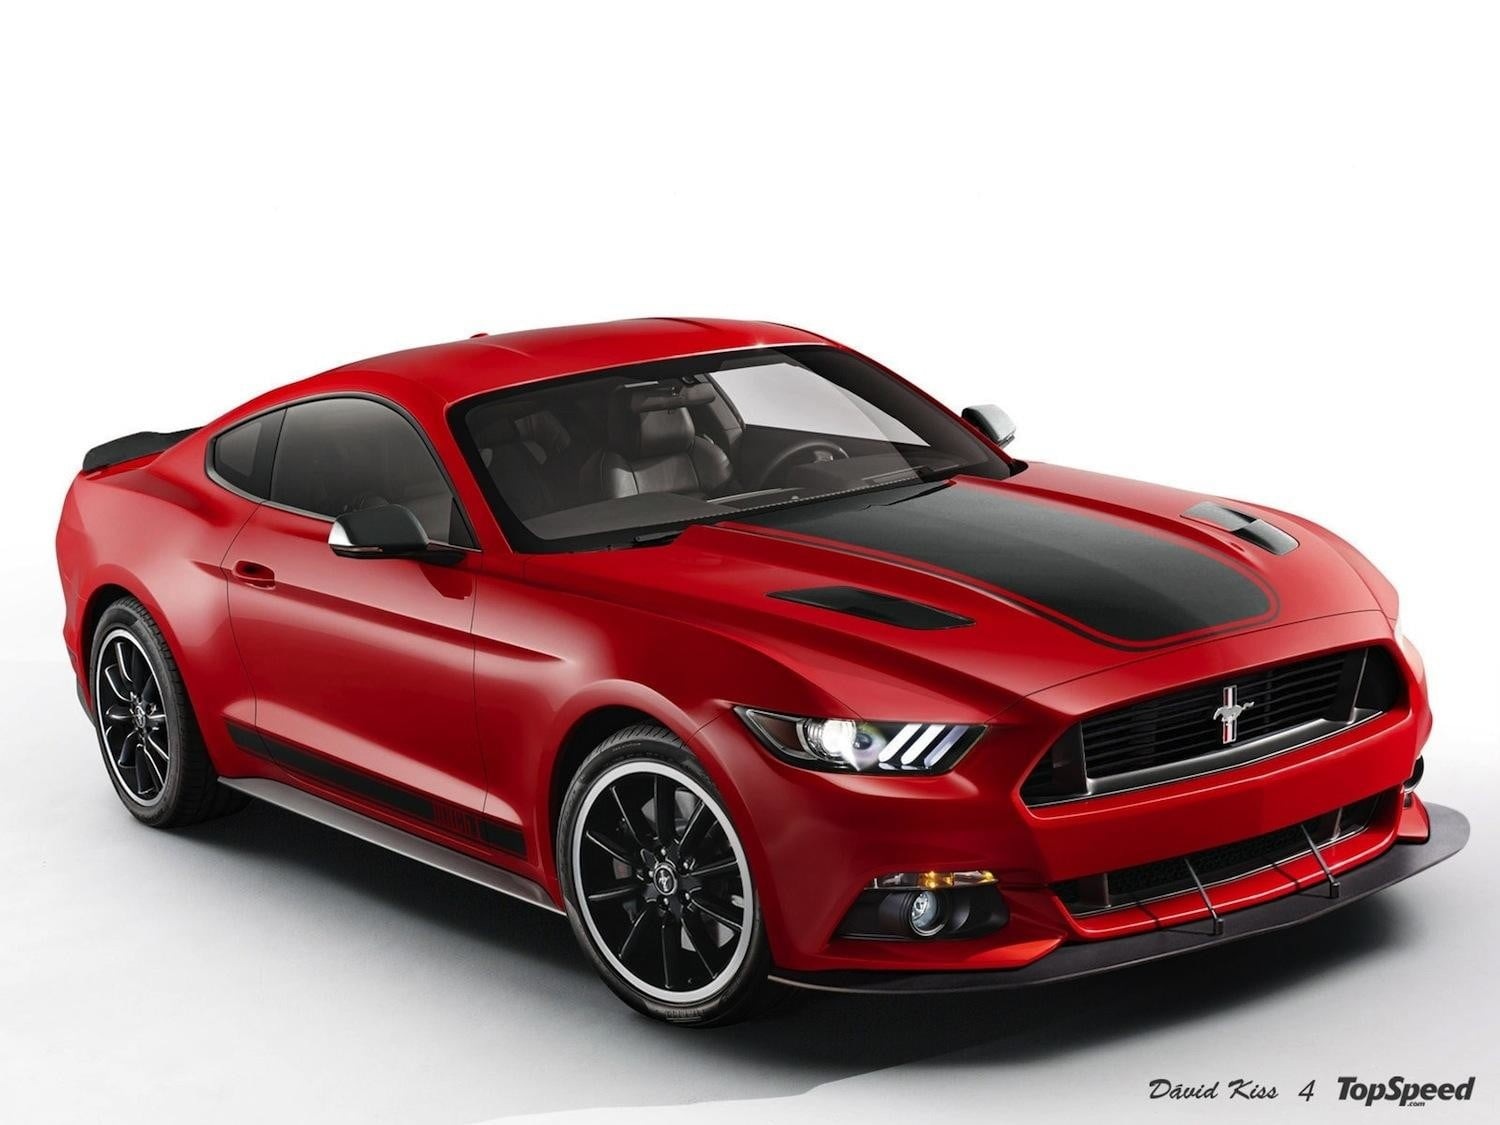 2016 Mustang Mach 1 >> 2016 Ford Mustang Mach 1 Specs Performance And Pricing